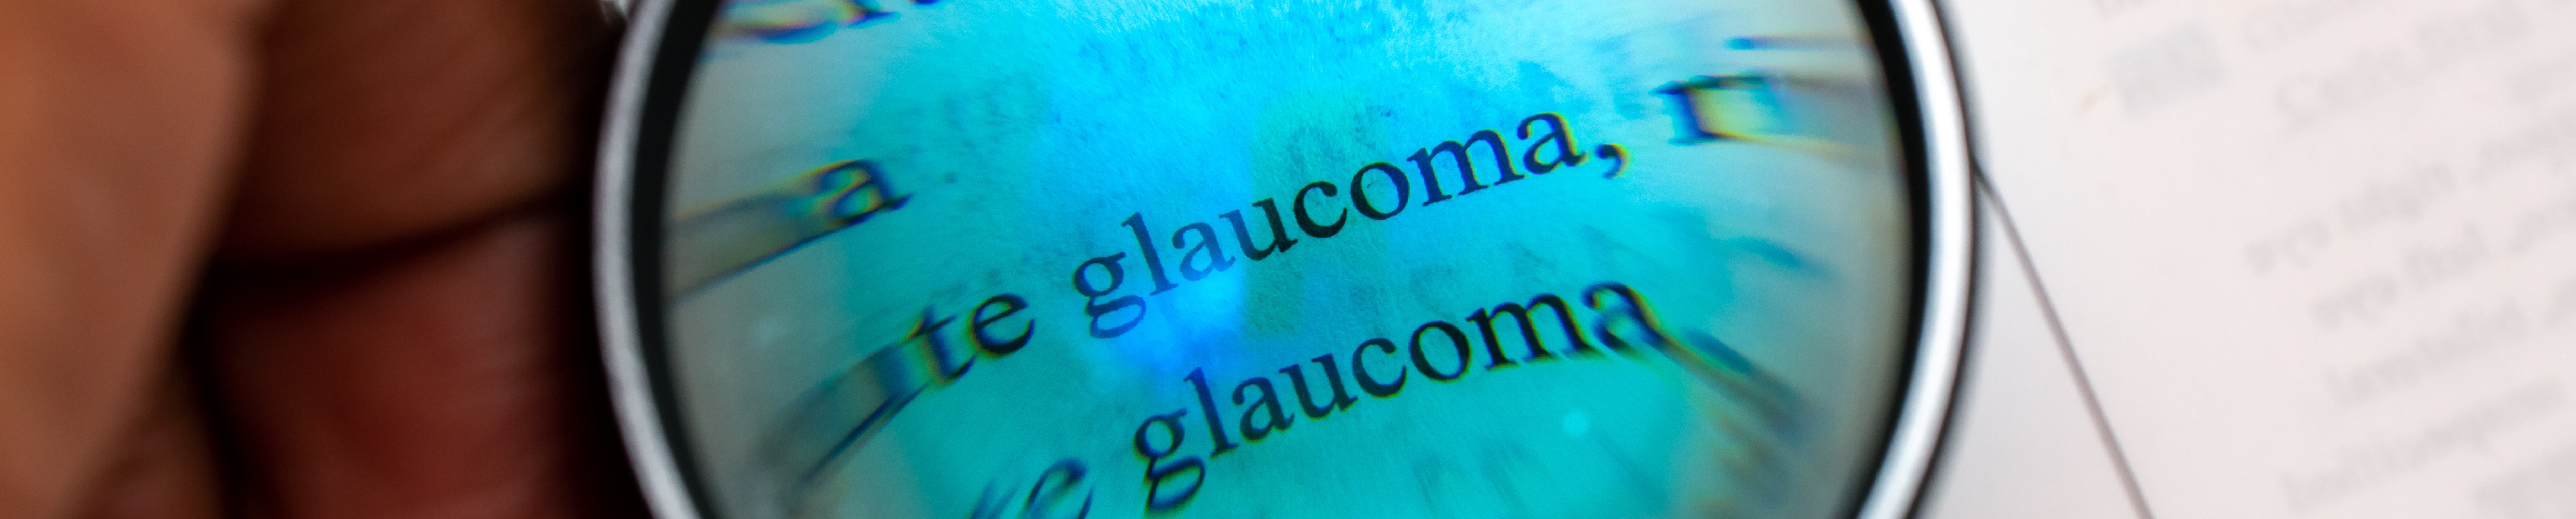 Magnifying glass showing the word glaucoma